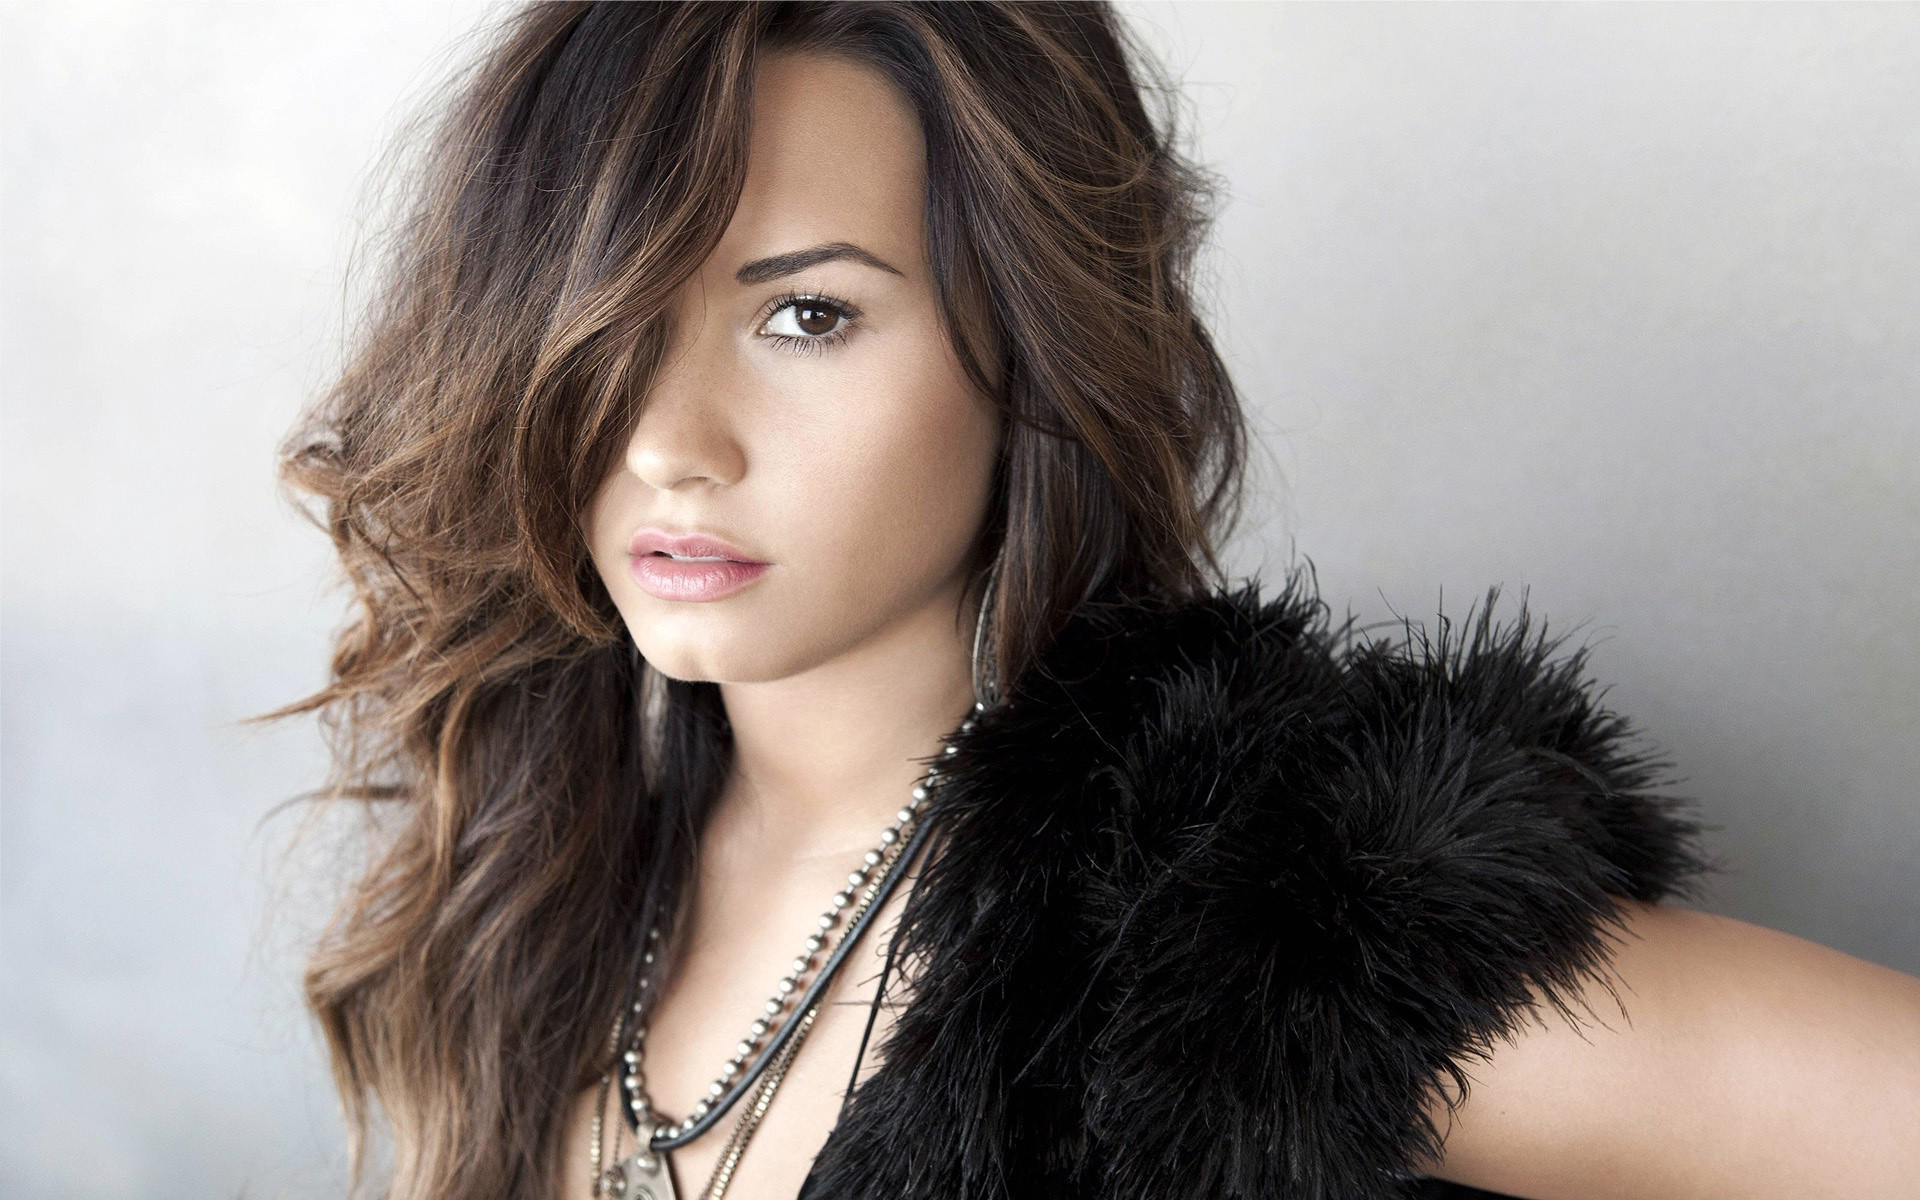 Demi Lovato Photoshoot - Wallpaper, High Definition, High ...